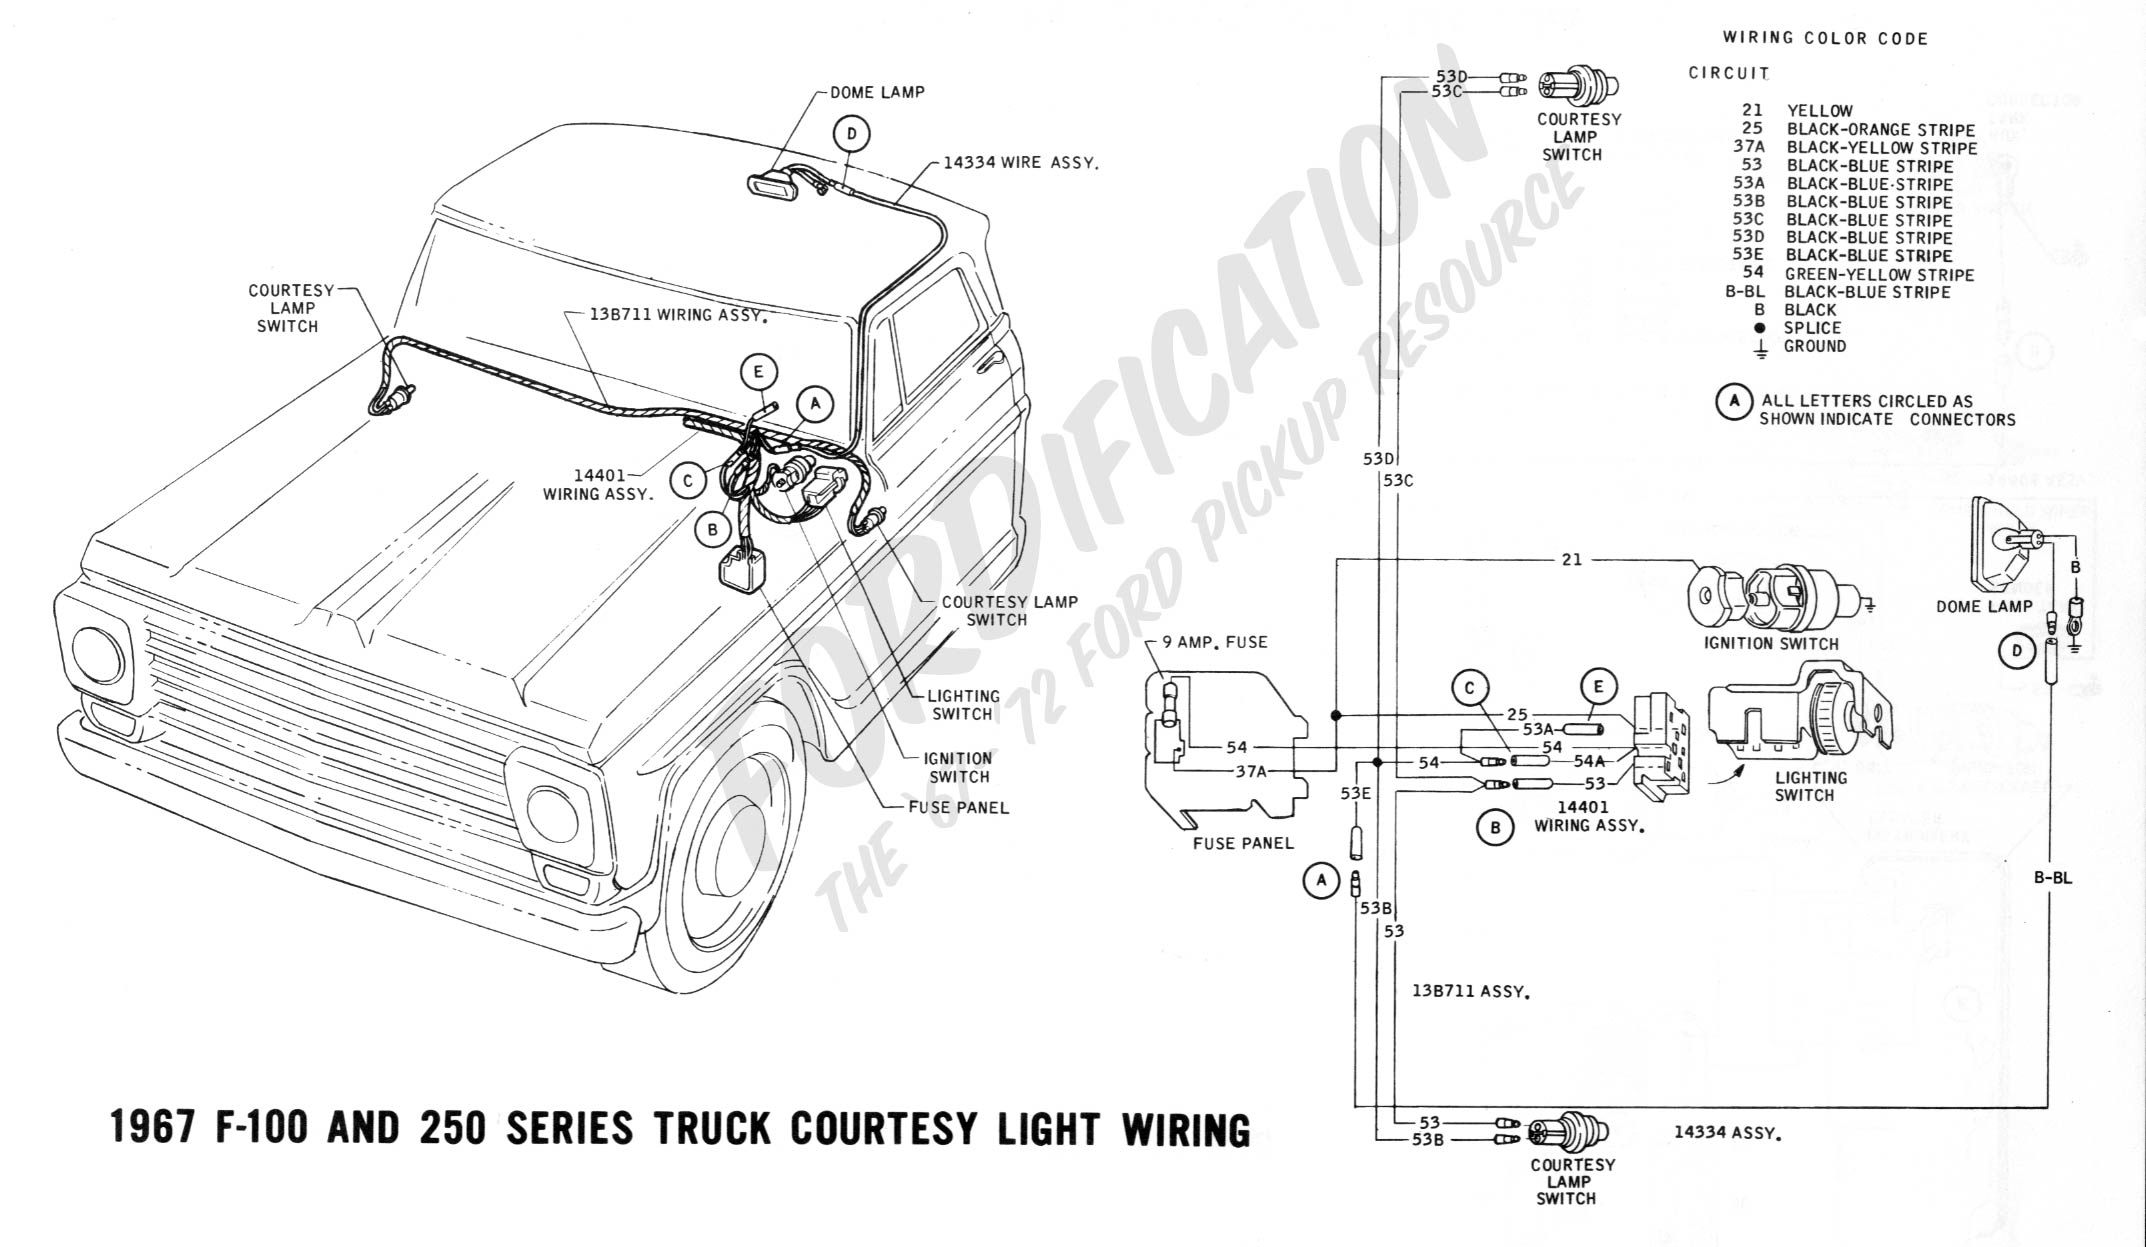 wiring 1967courtesylight ford truck technical drawings and schematics section h wiring ford ignition switch wiring diagram at n-0.co